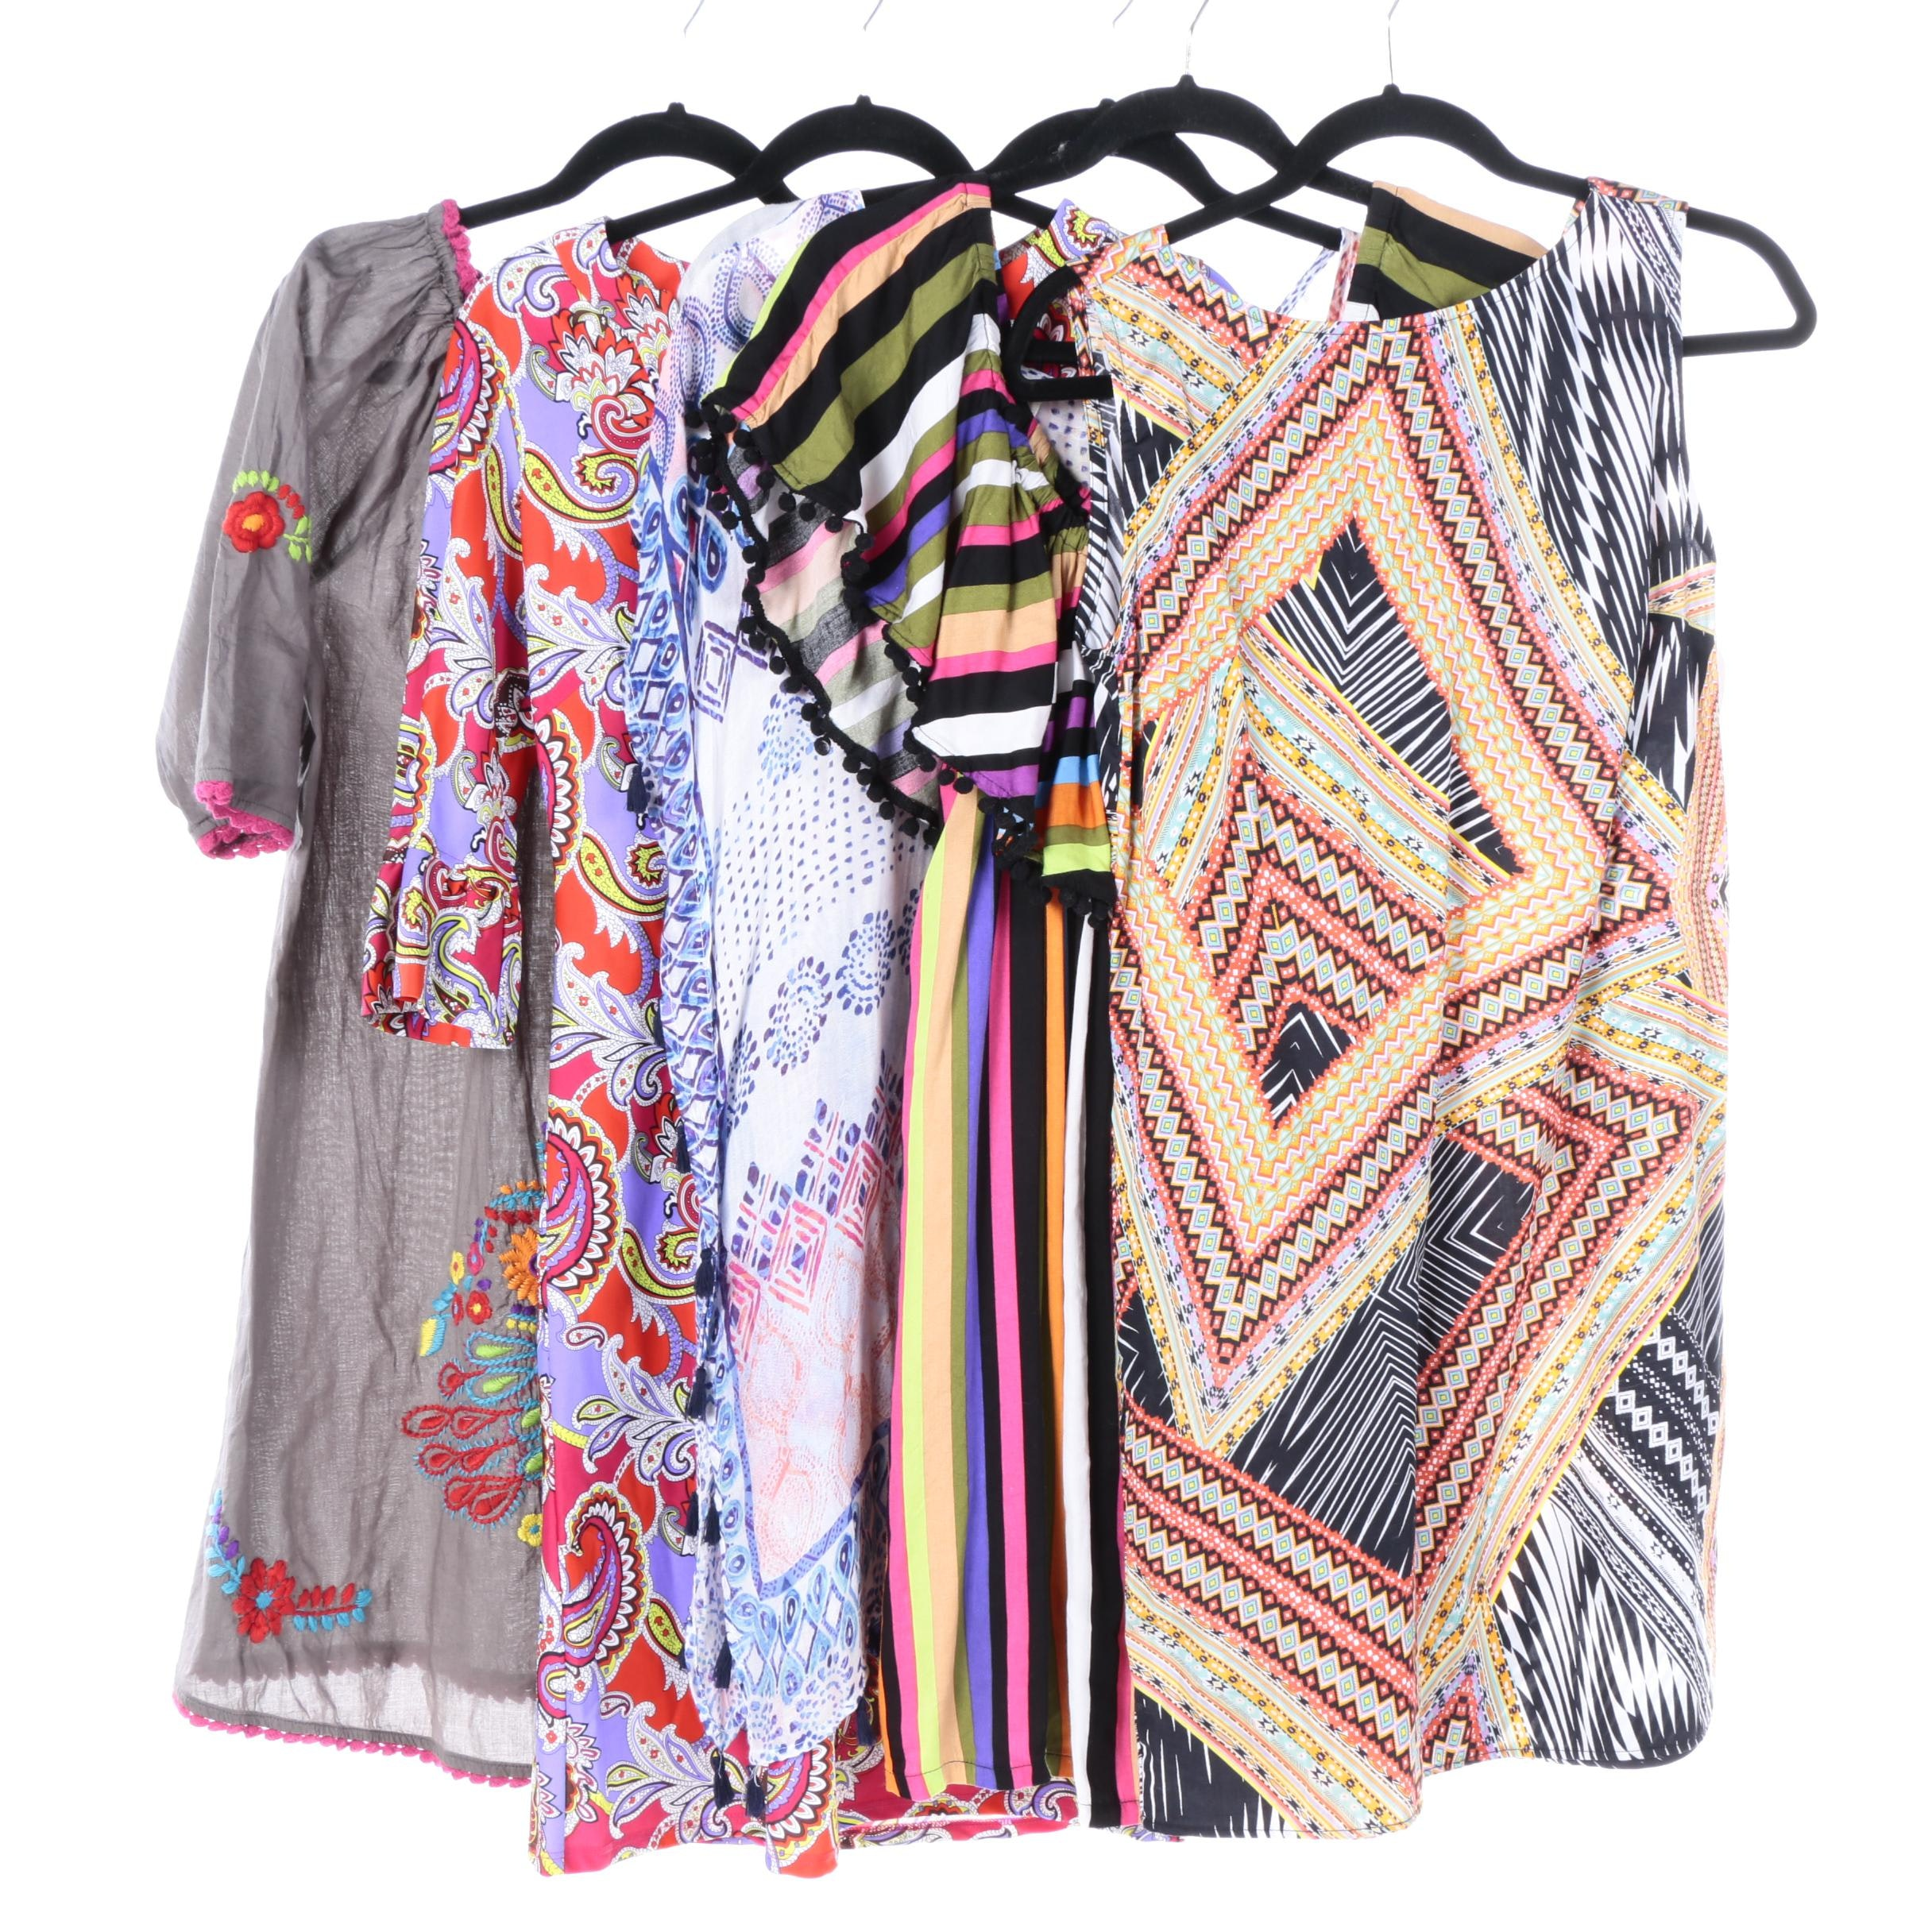 Women's Dresses and Tunic Including Jude Connally